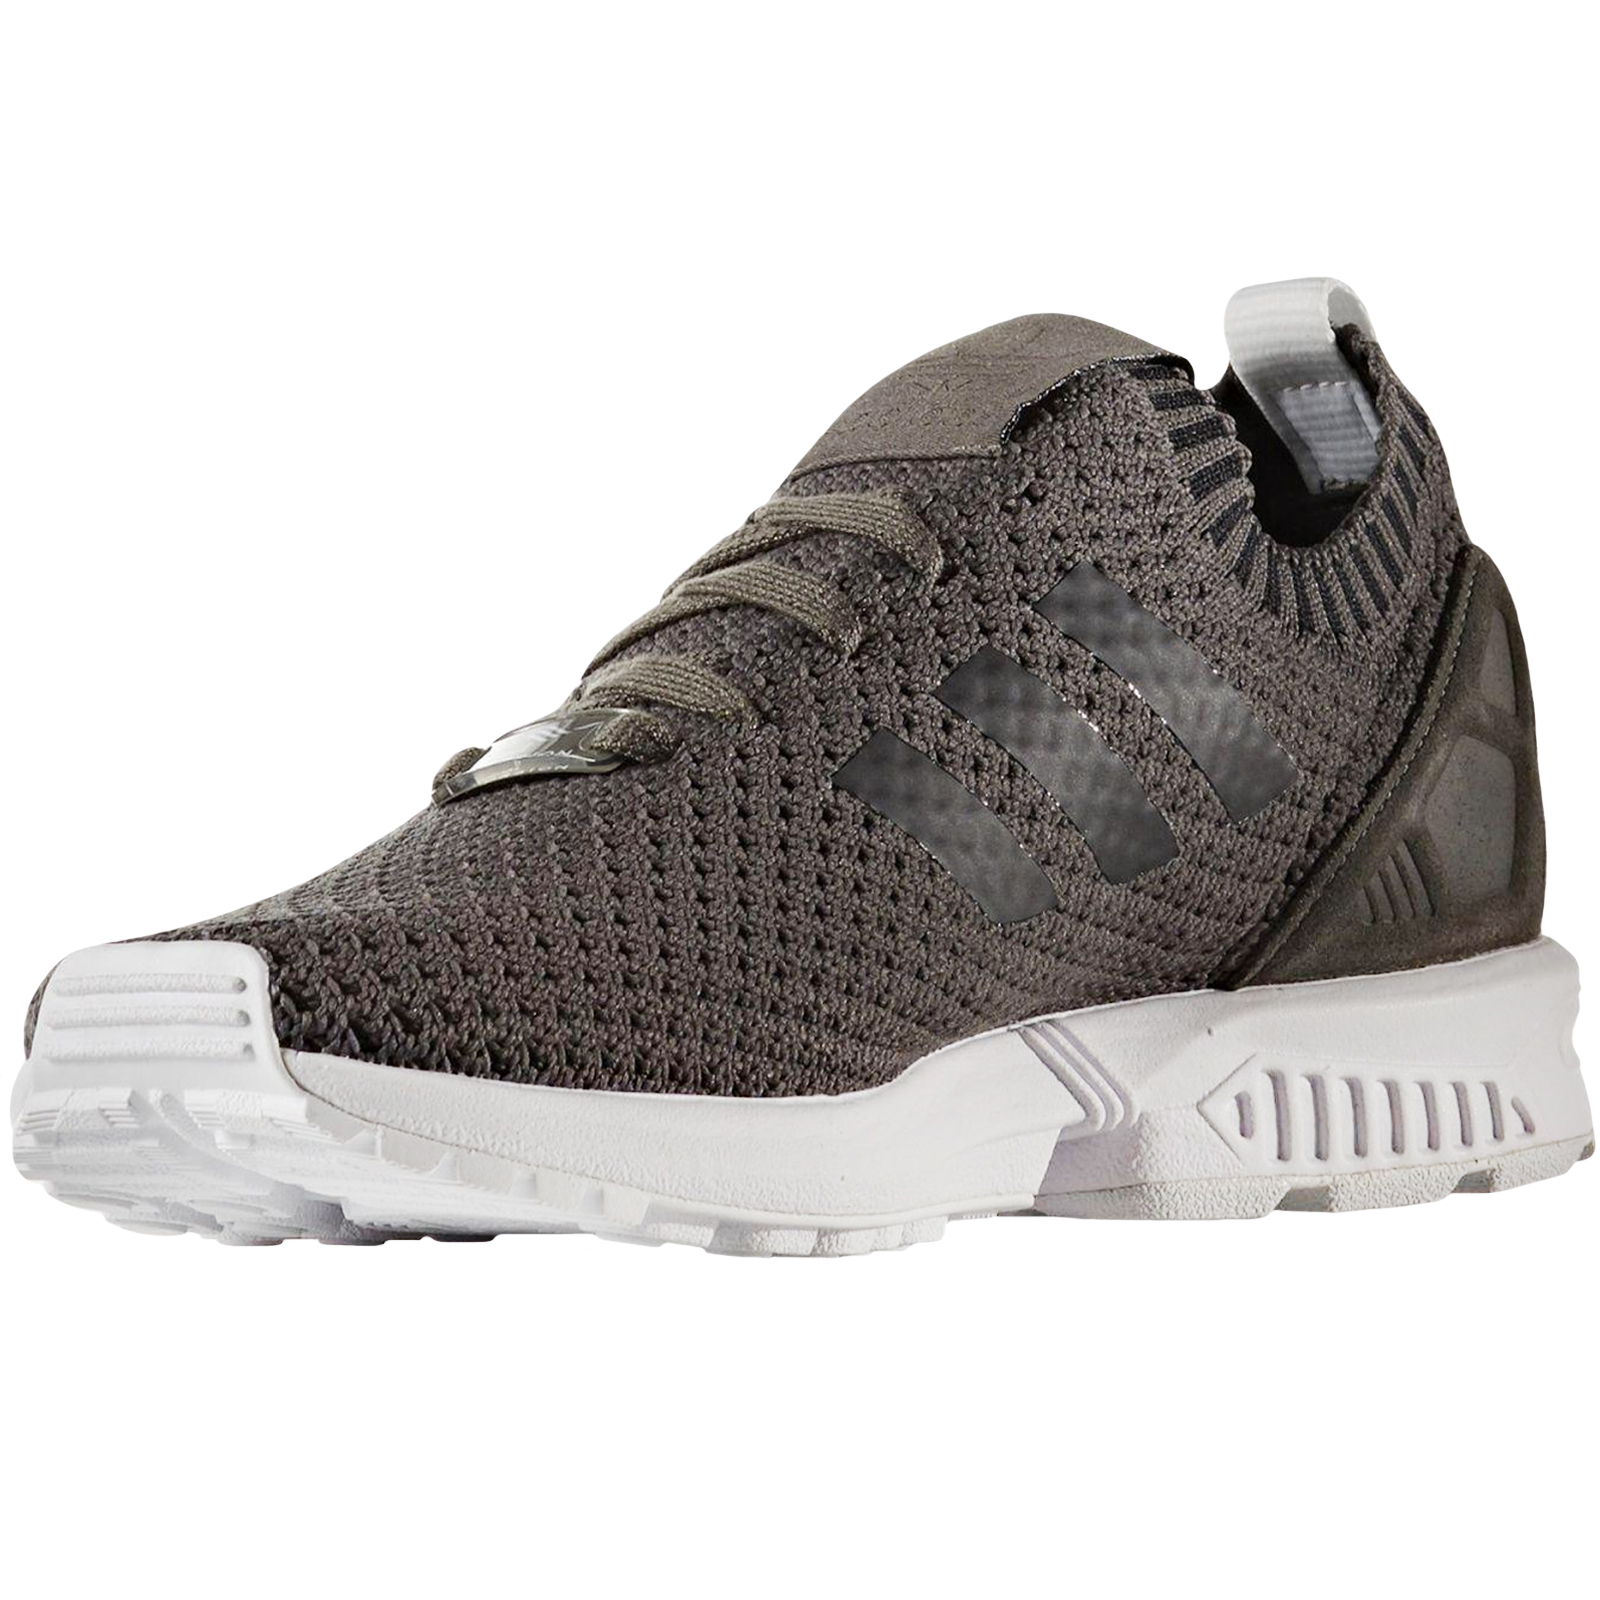 c3d23ffd17312c adidas Originals Womens ZX Flux Primeknit Running Lace Up Trainers ...